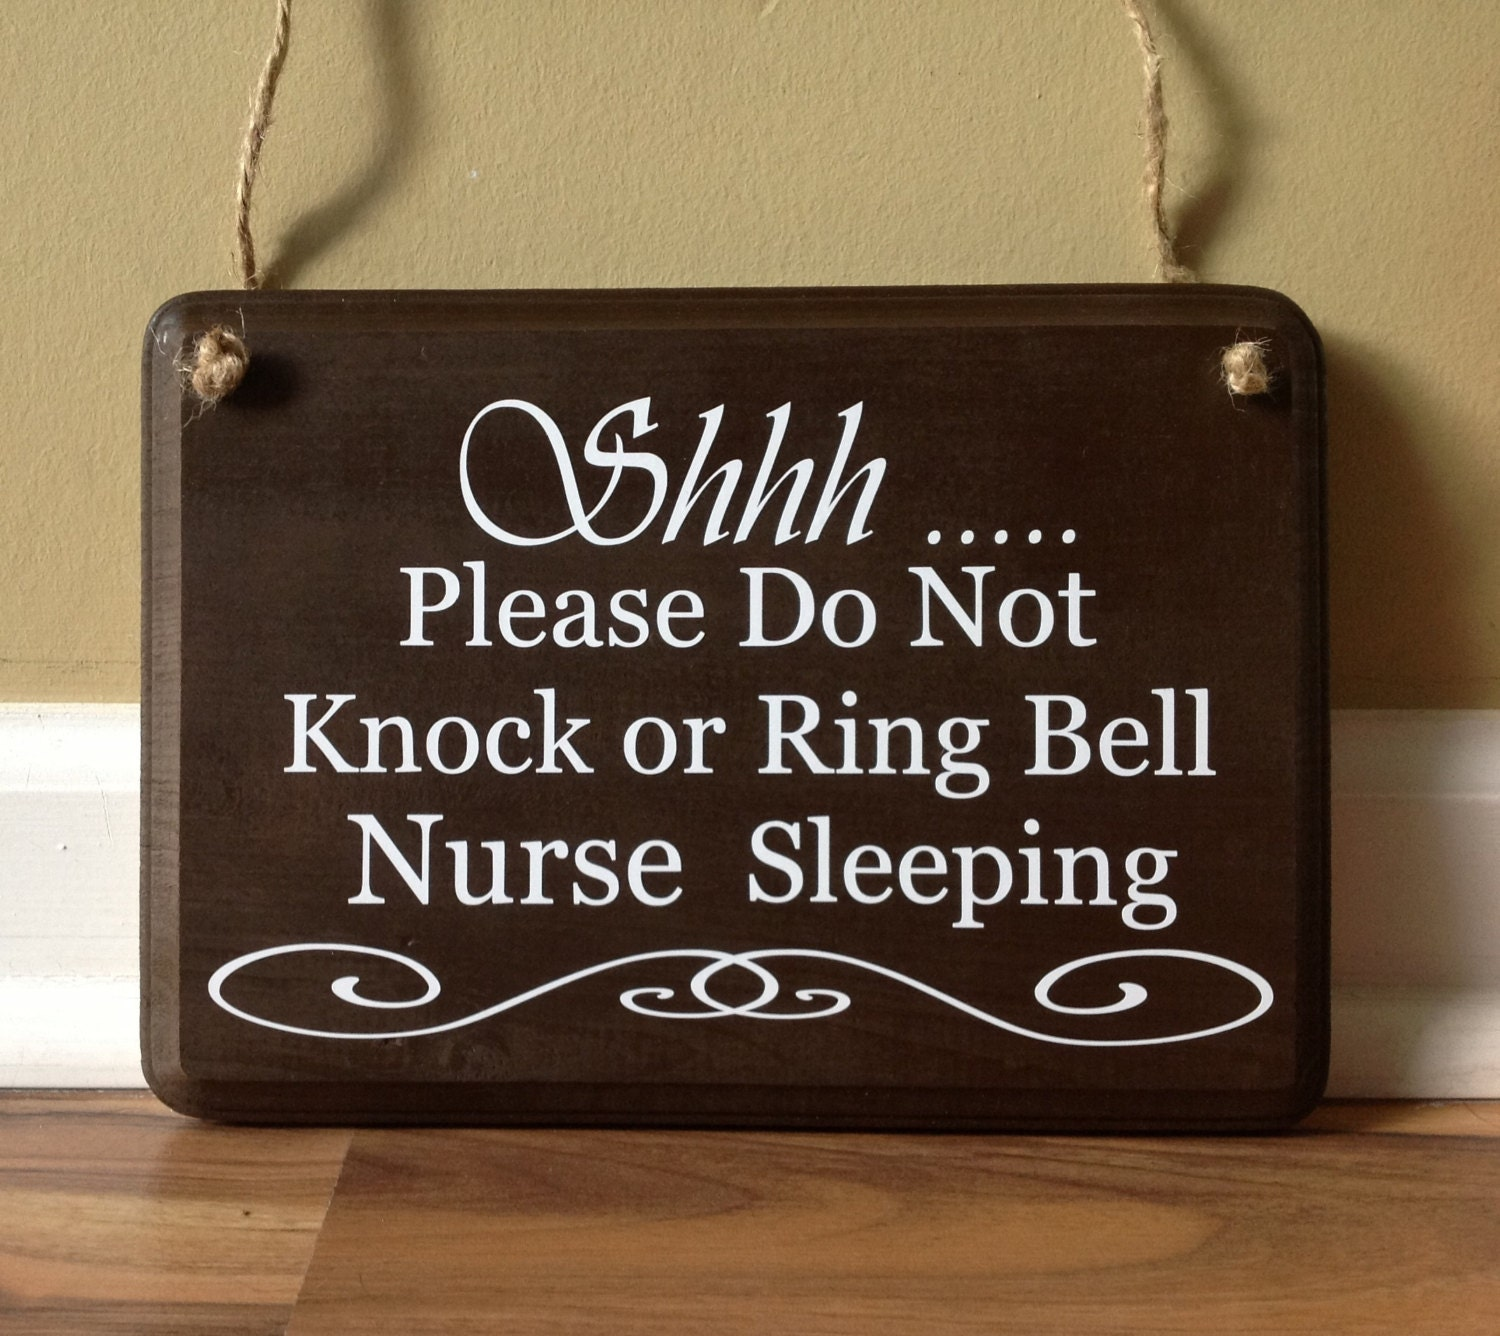 Shhh Please Do Not Knock Please Do Not Ring Bell Nurse